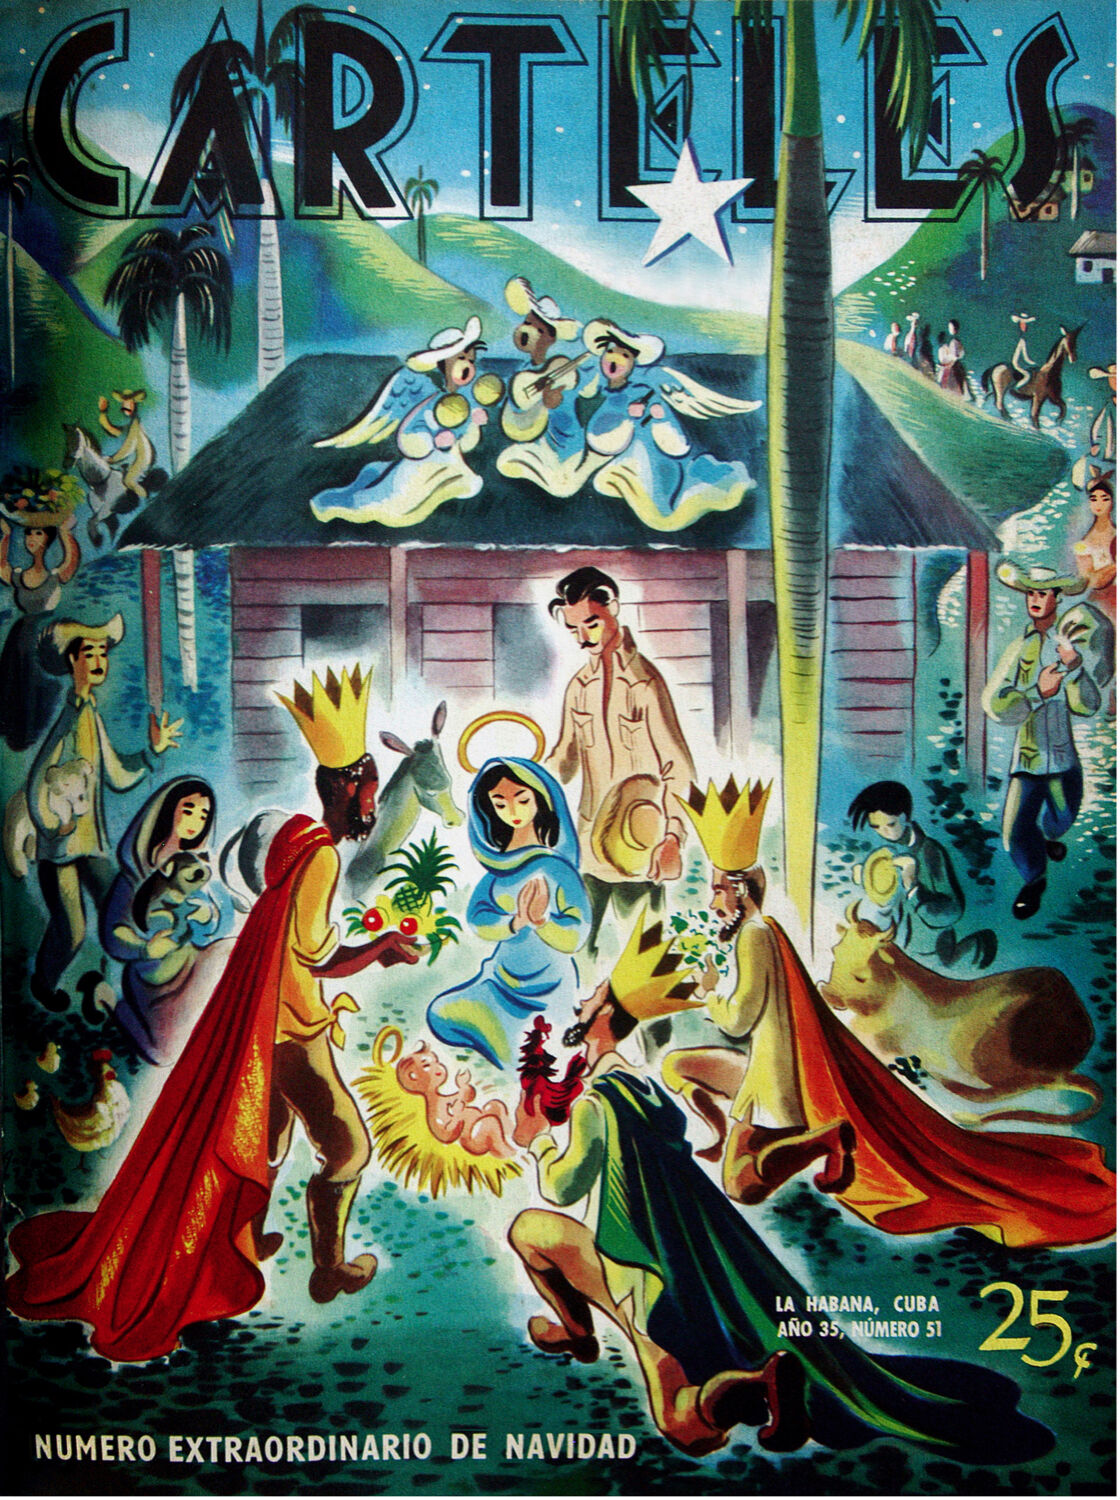 185.Decoration design Nativity poster Navidad en Cuba Christmas  The Best